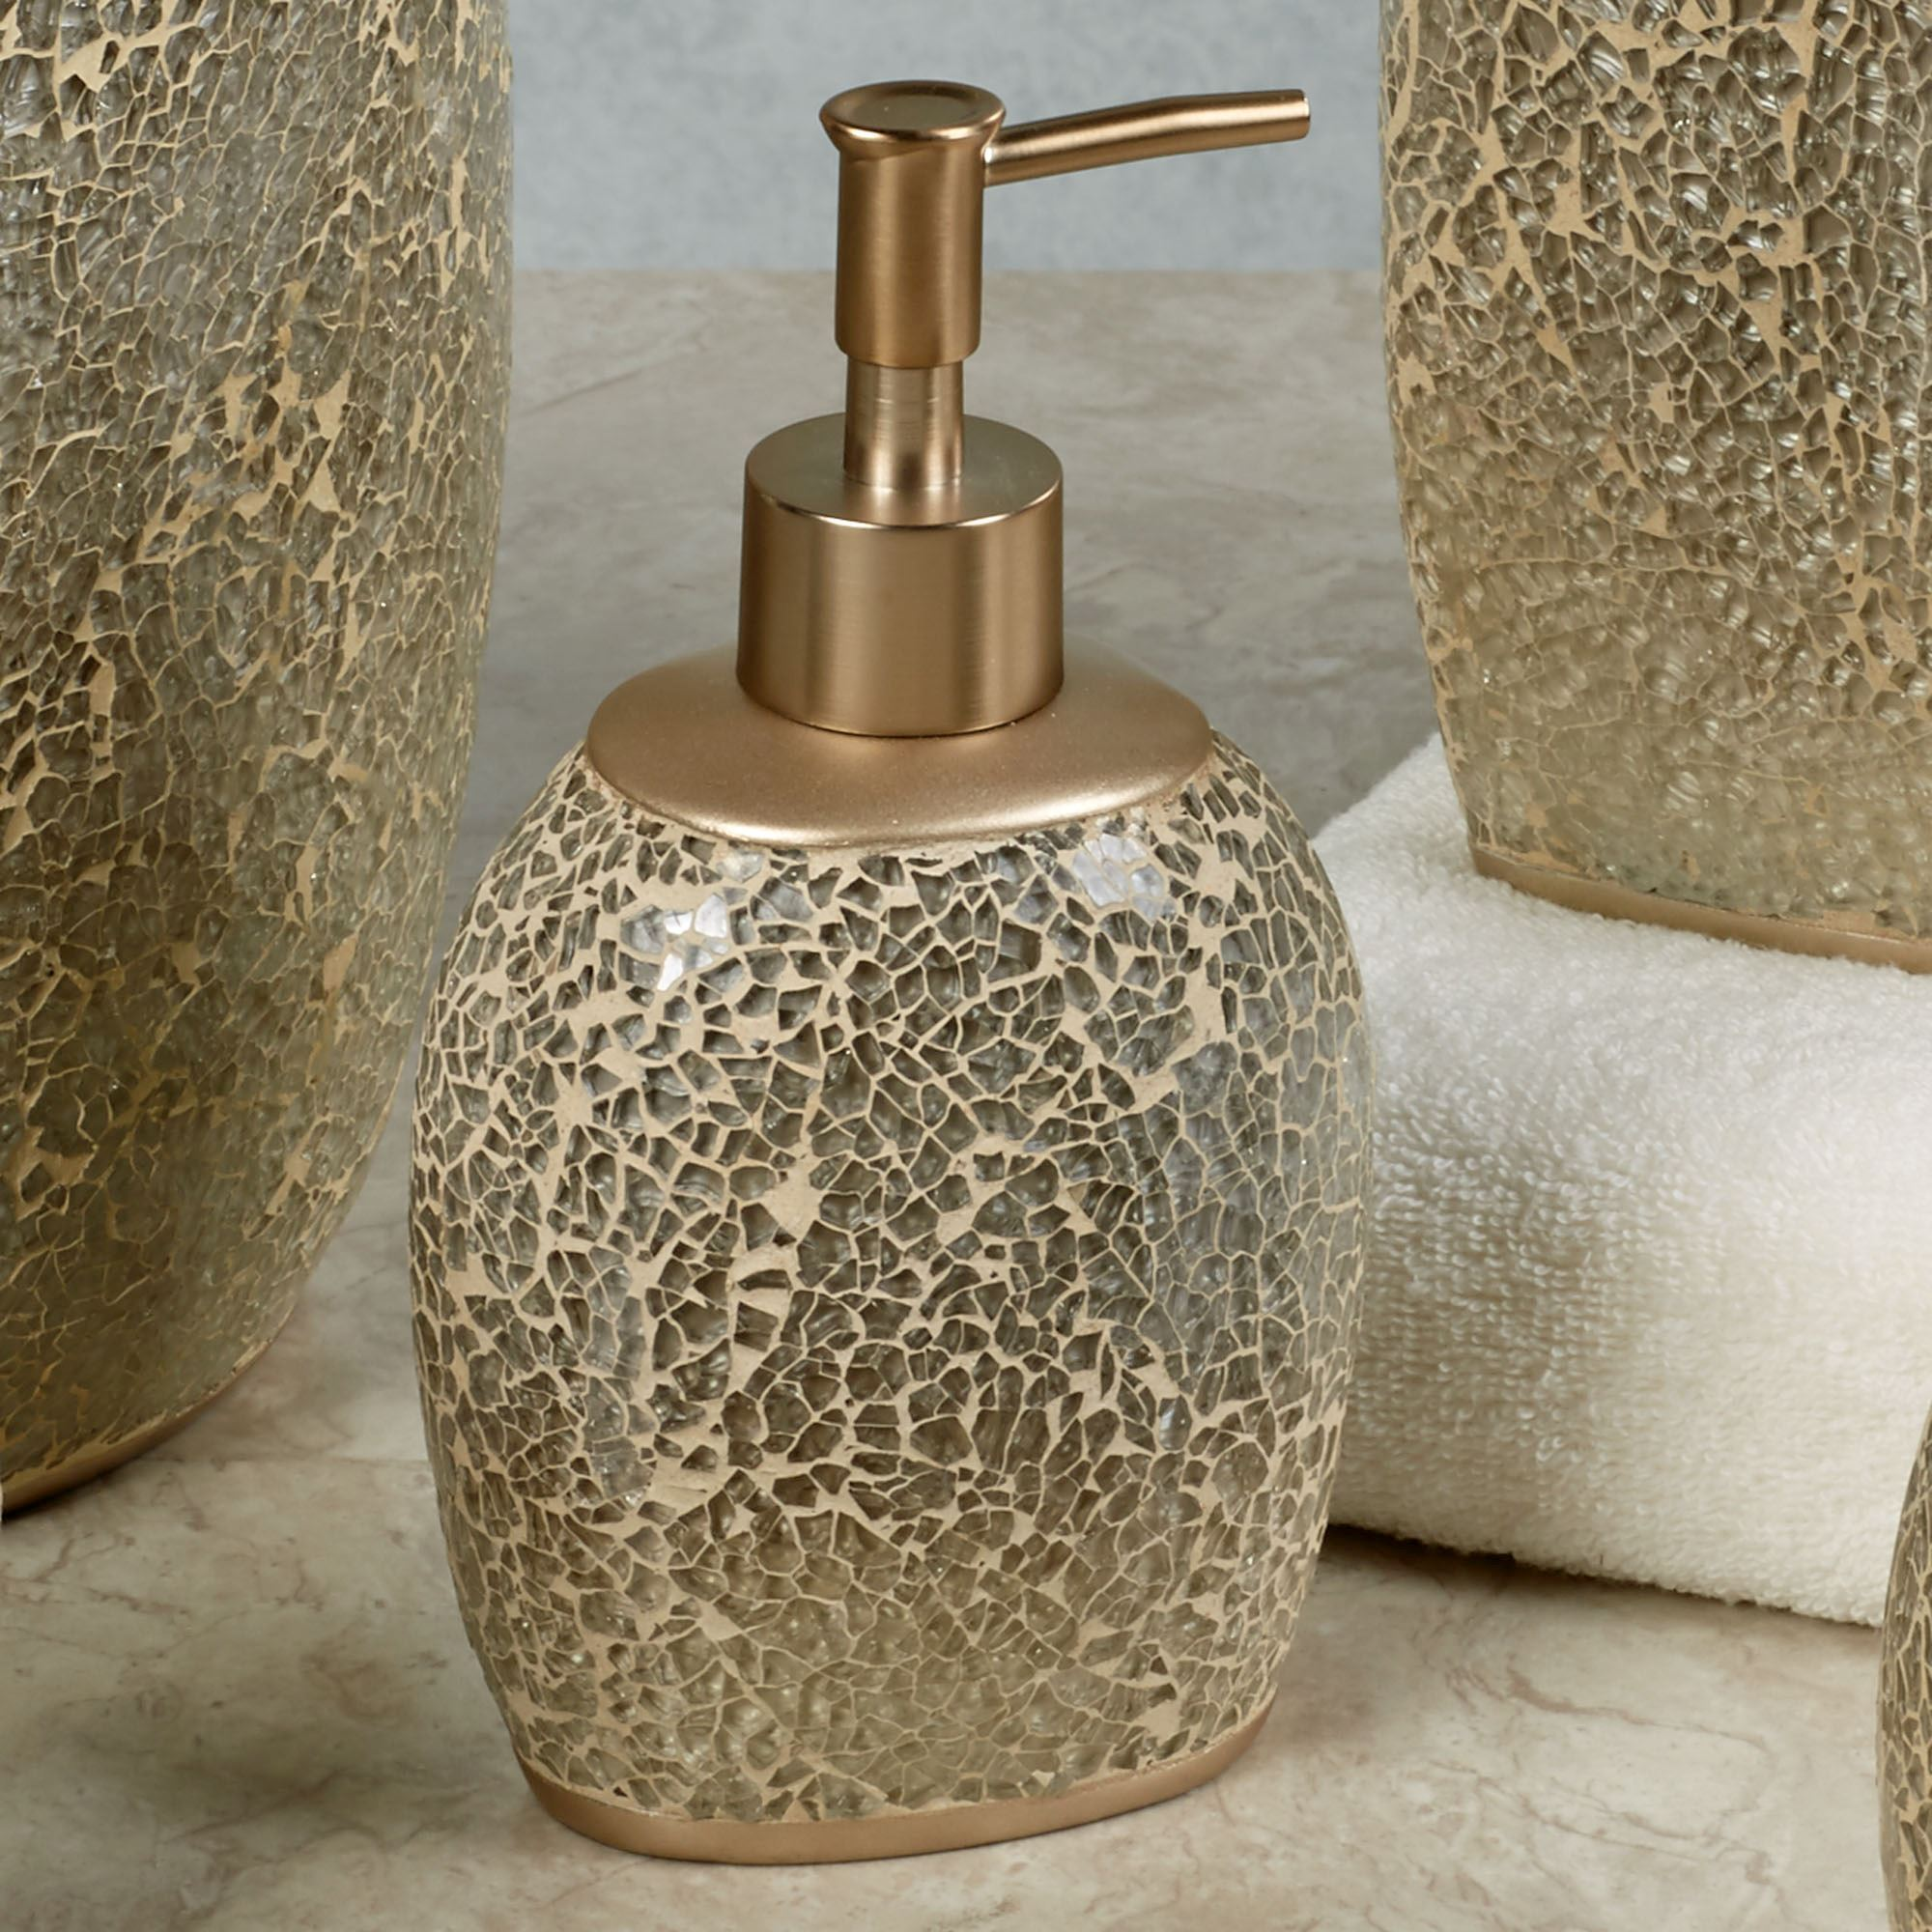 Beau Huntington Lotion Soap Dispenser Champagne